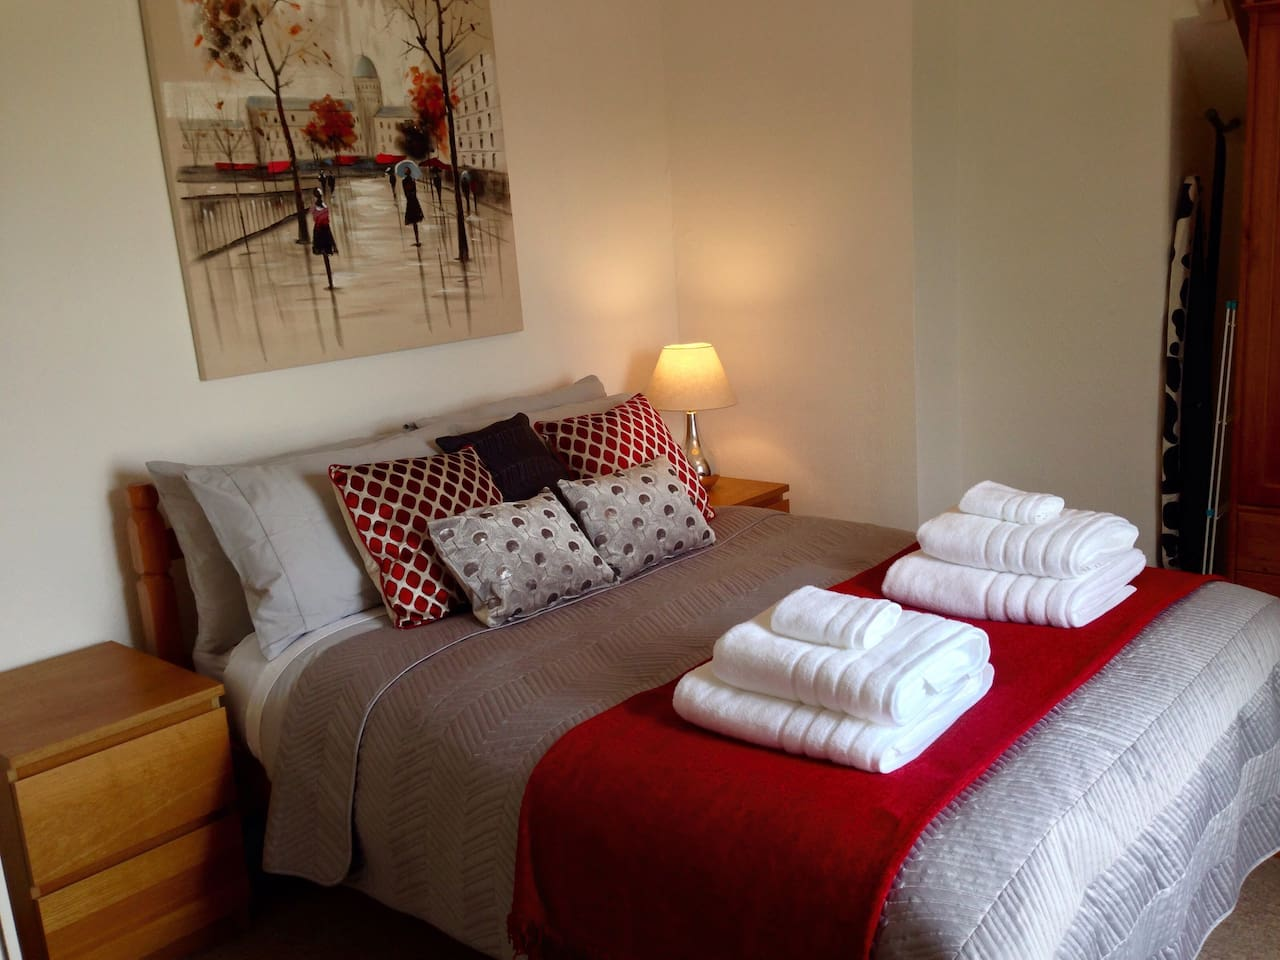 Double bed with cotton sheets and fluffy white cotton towels